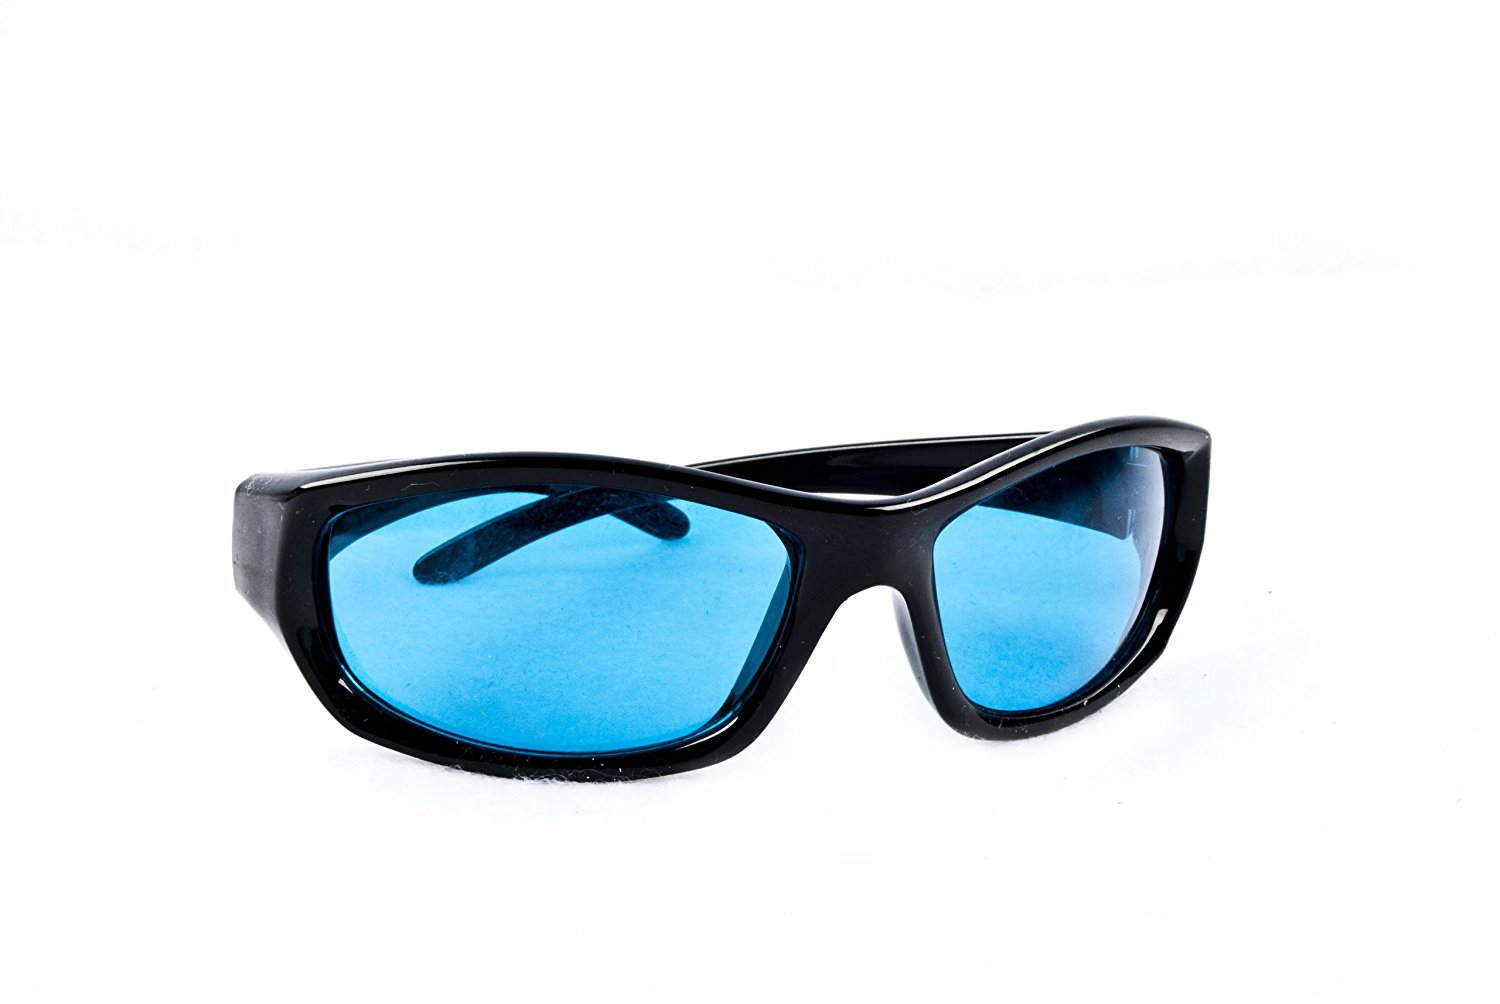 Force Military Ballistic Safety Glasses Black Frame Blue Diamond Lens